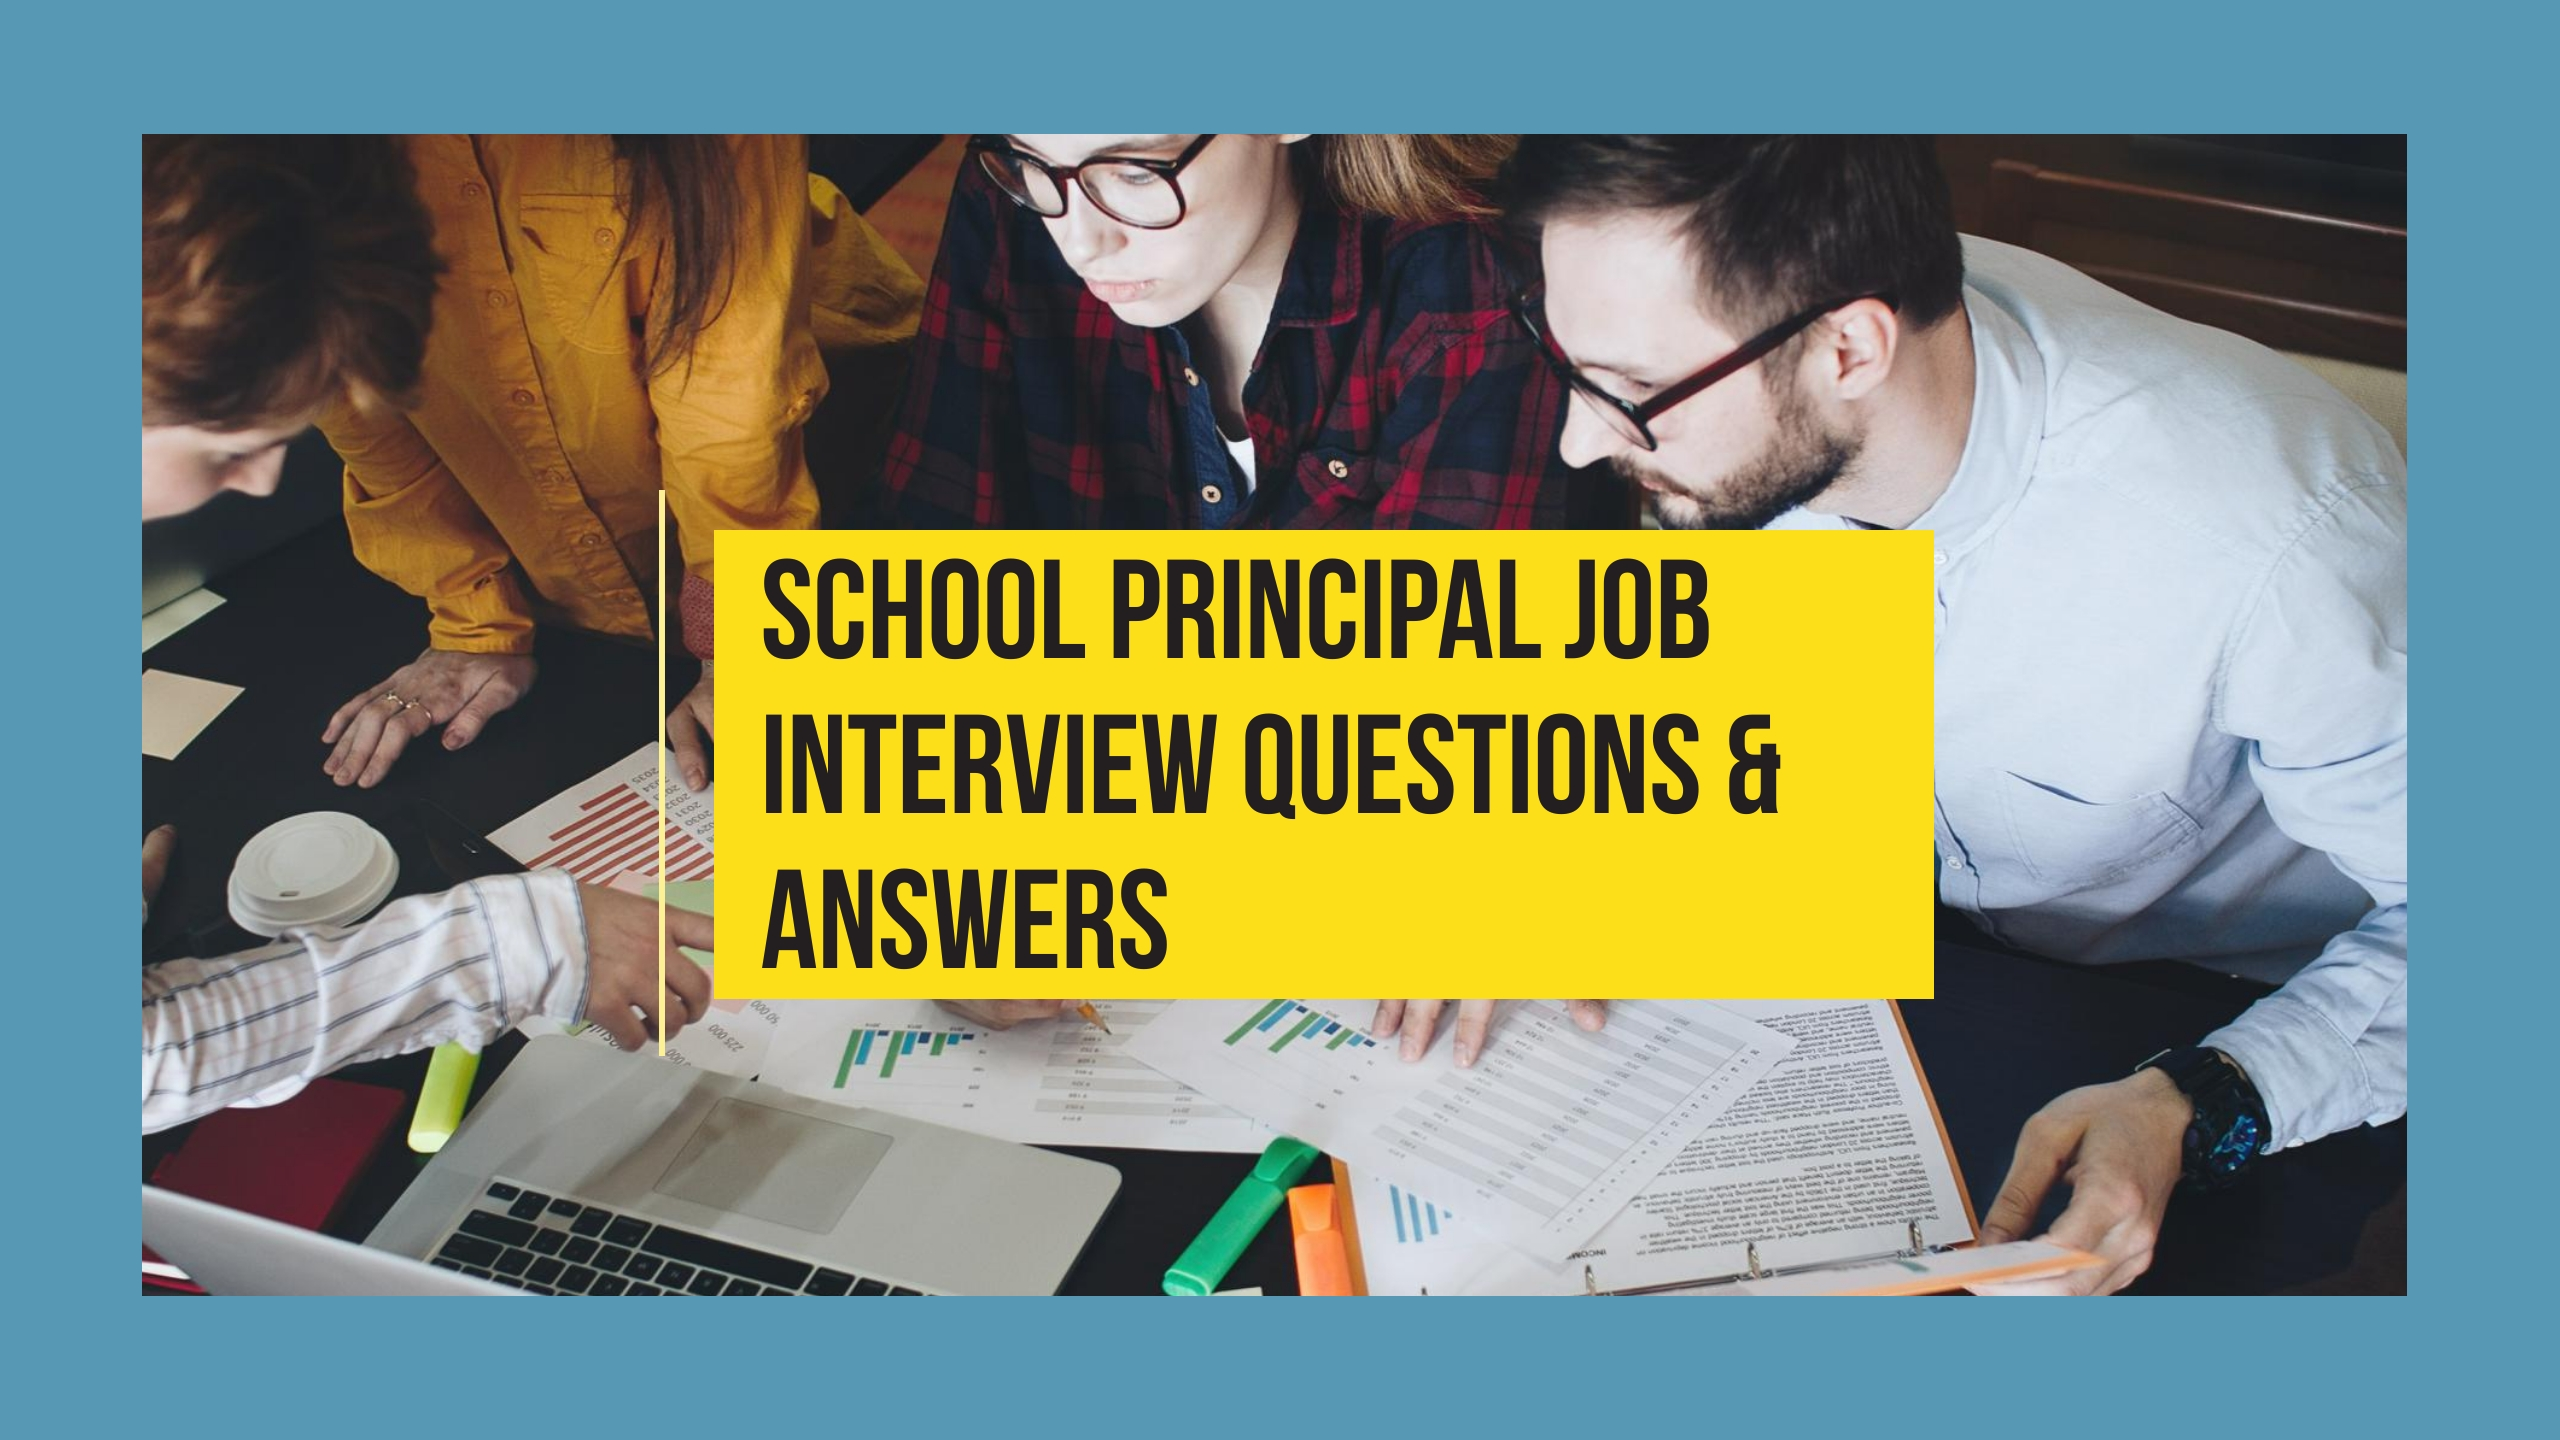 30+ School Principal Job Interview Questions and Answers (Q&A) 2019